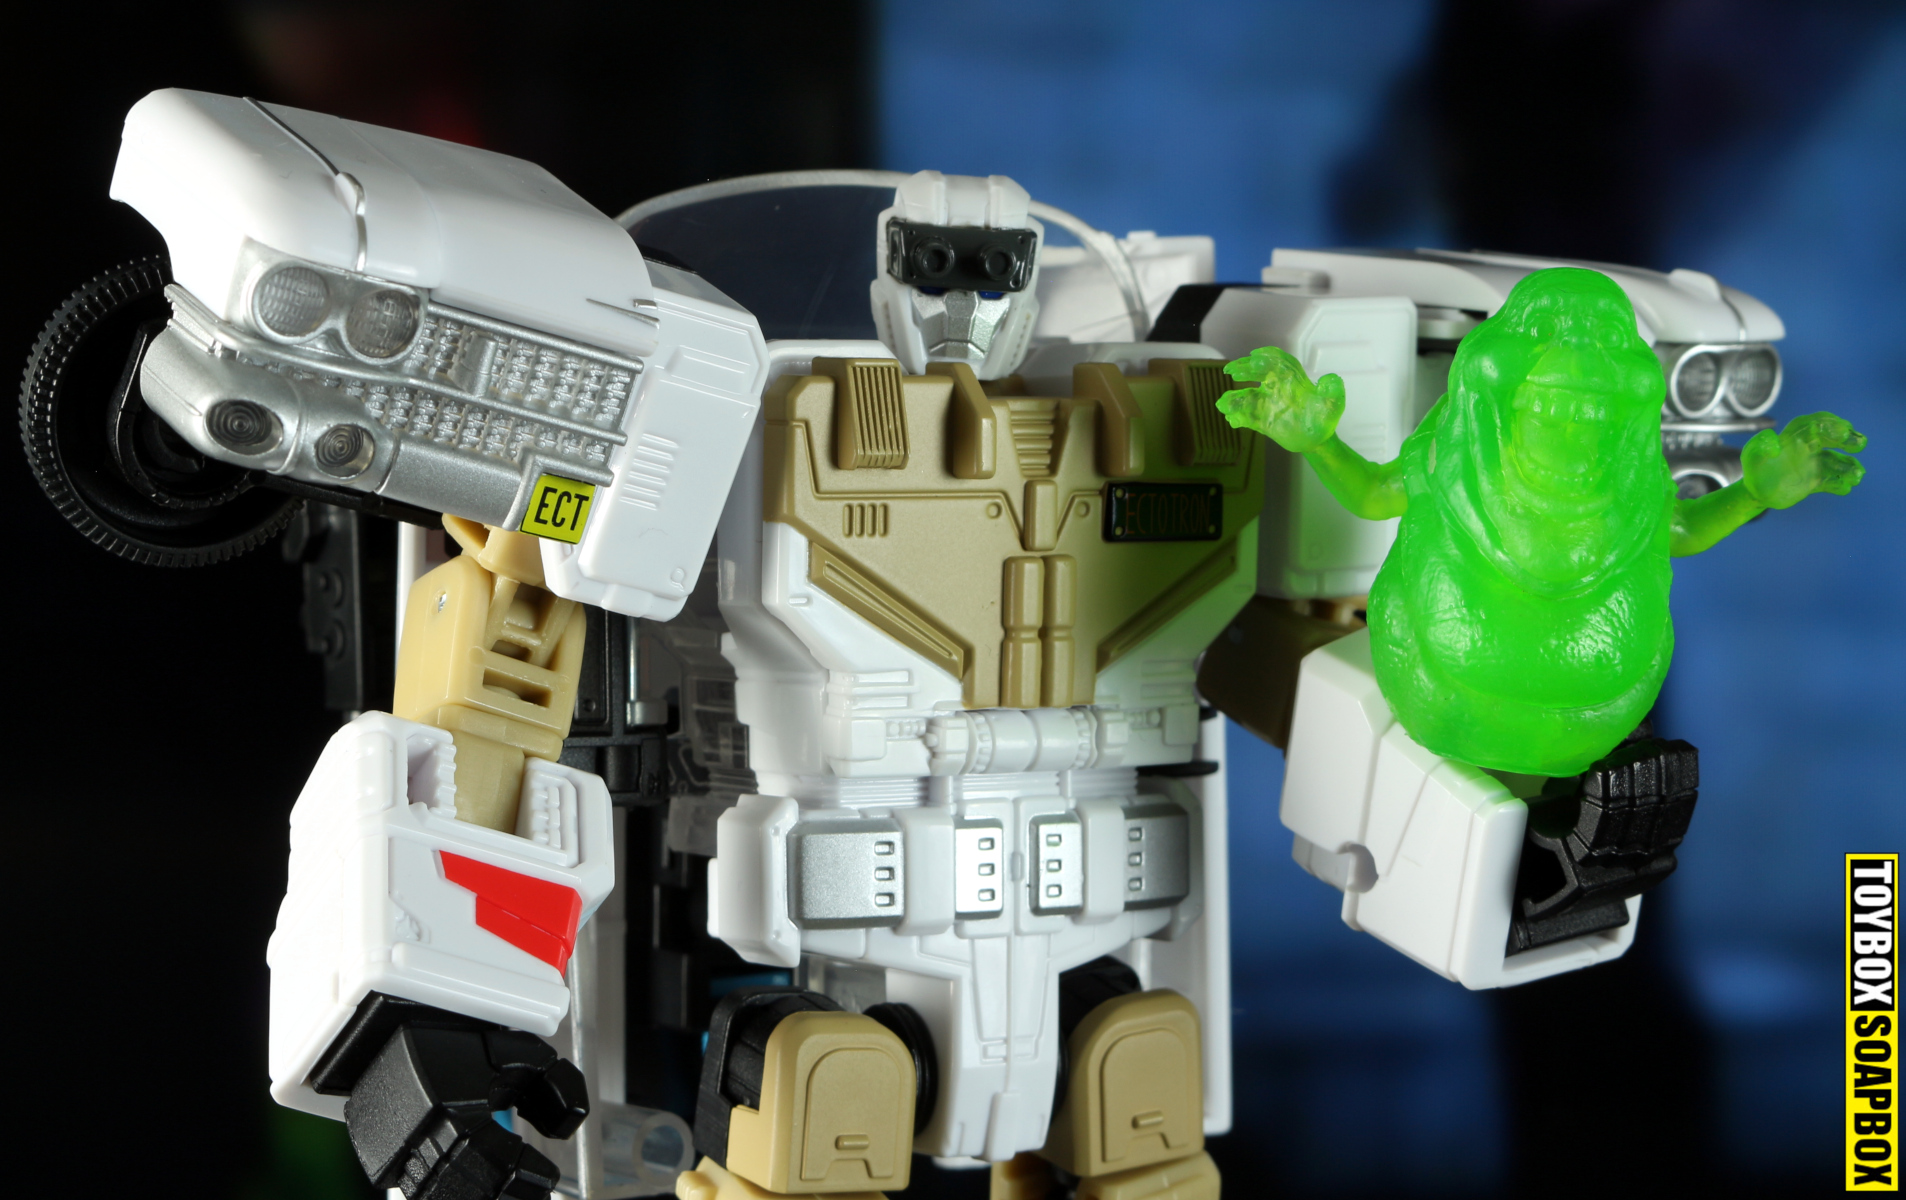 ectotron head and slimer